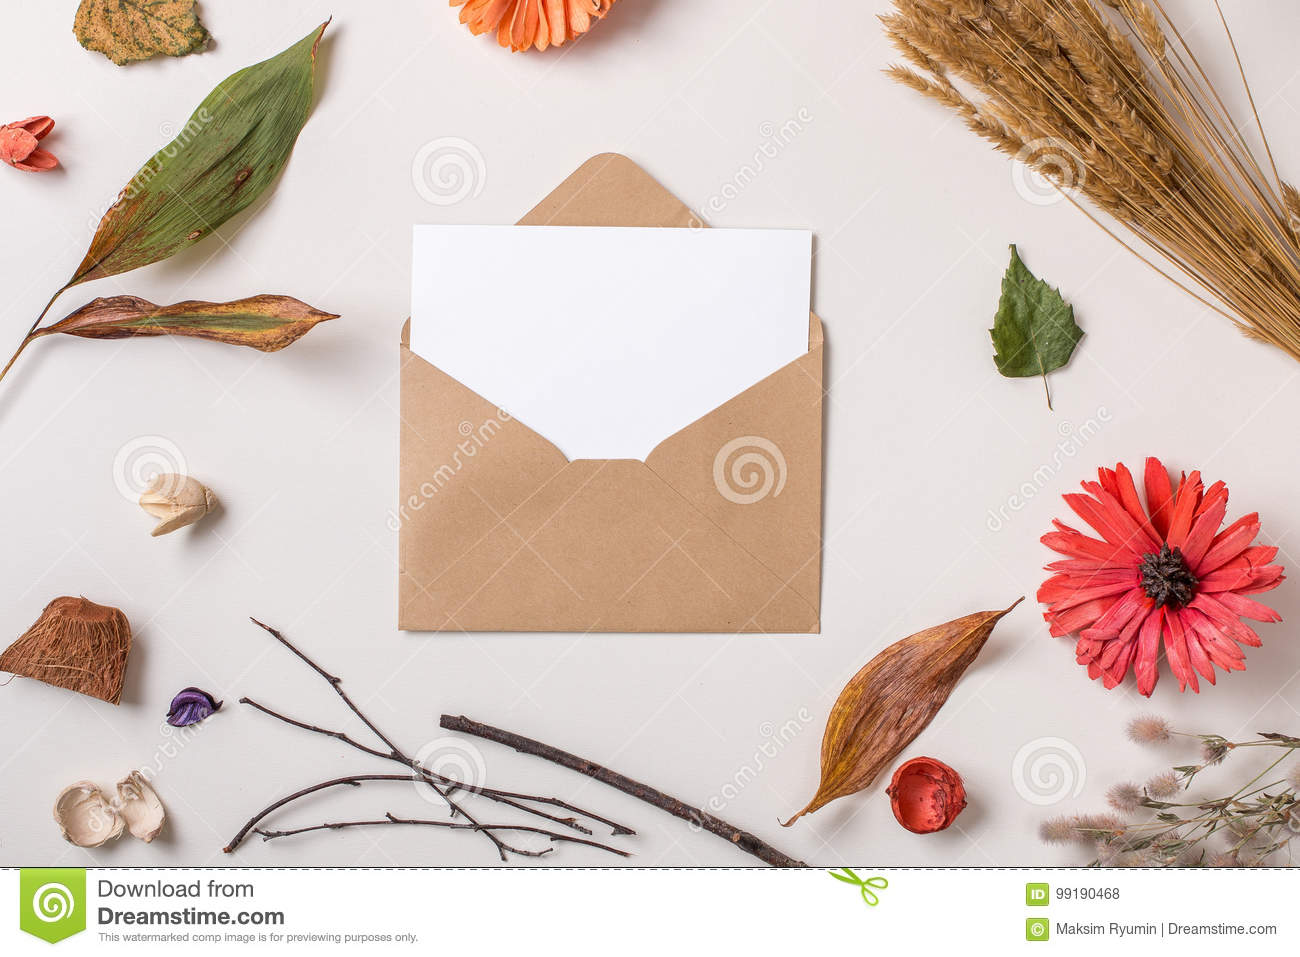 paper card in envelope composed with autumn dry plants